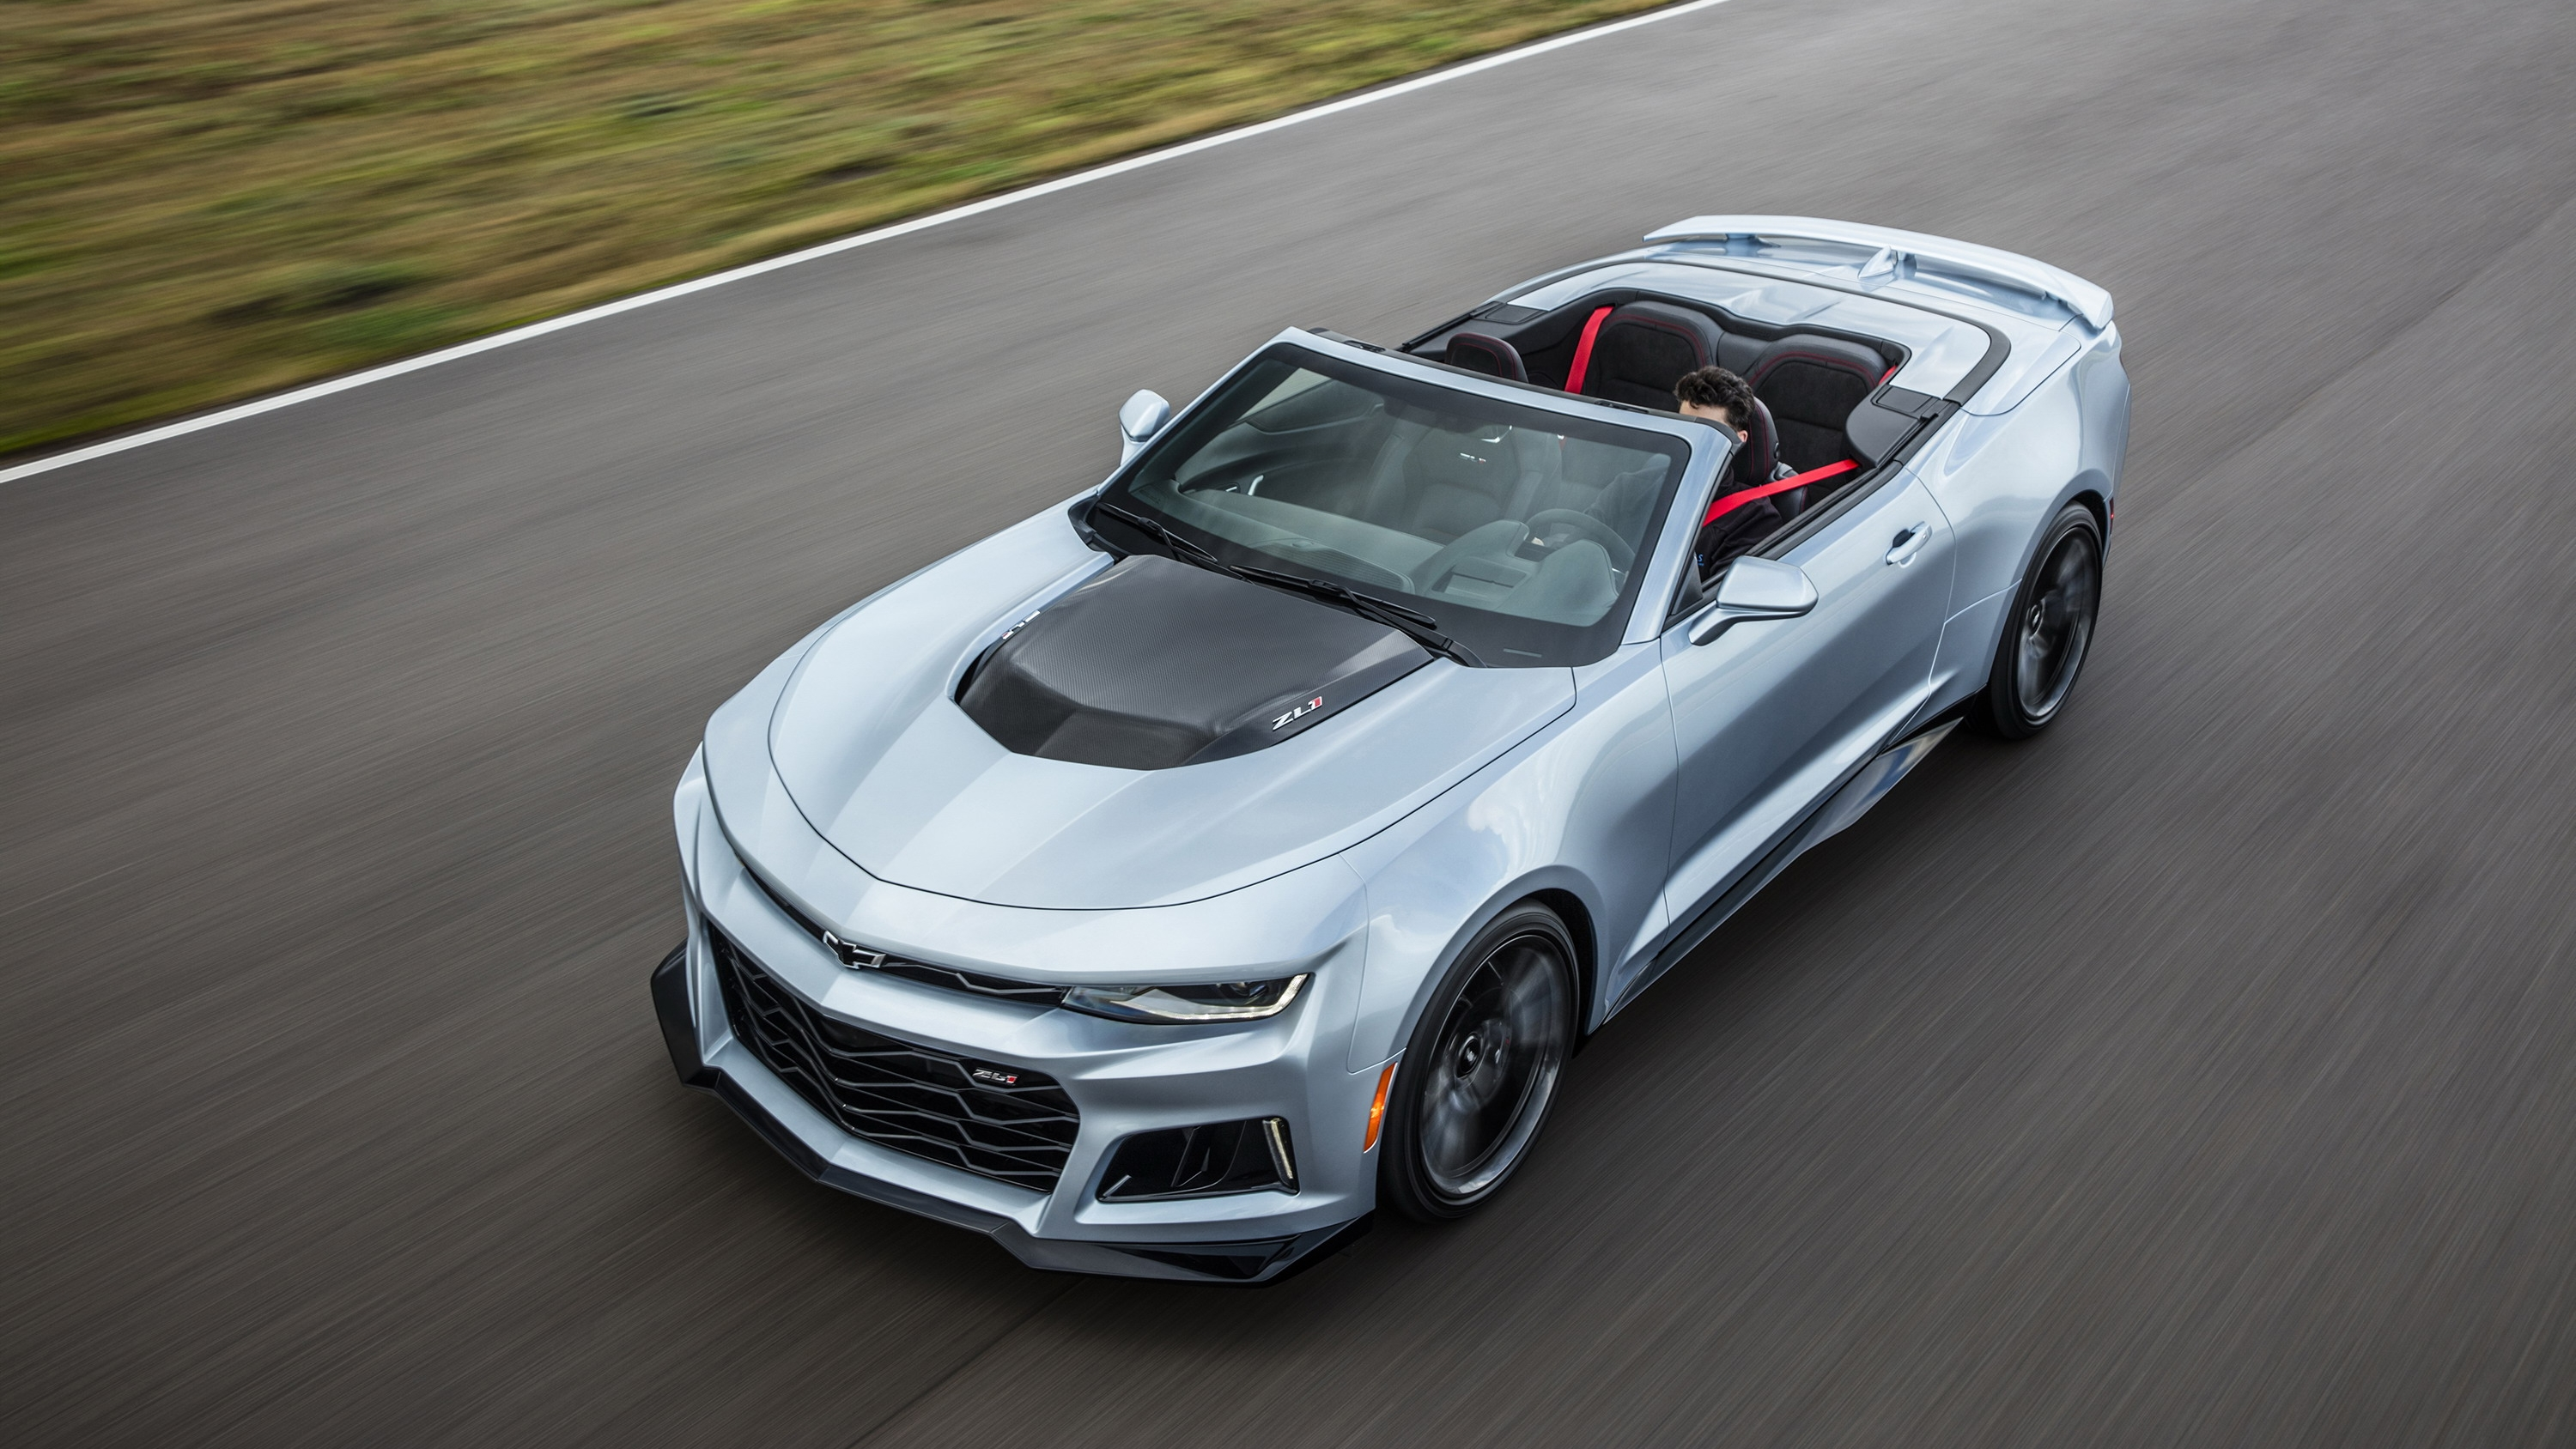 2018 Chevrolet Camaro ZL1 Convertible Review - Gallery ...